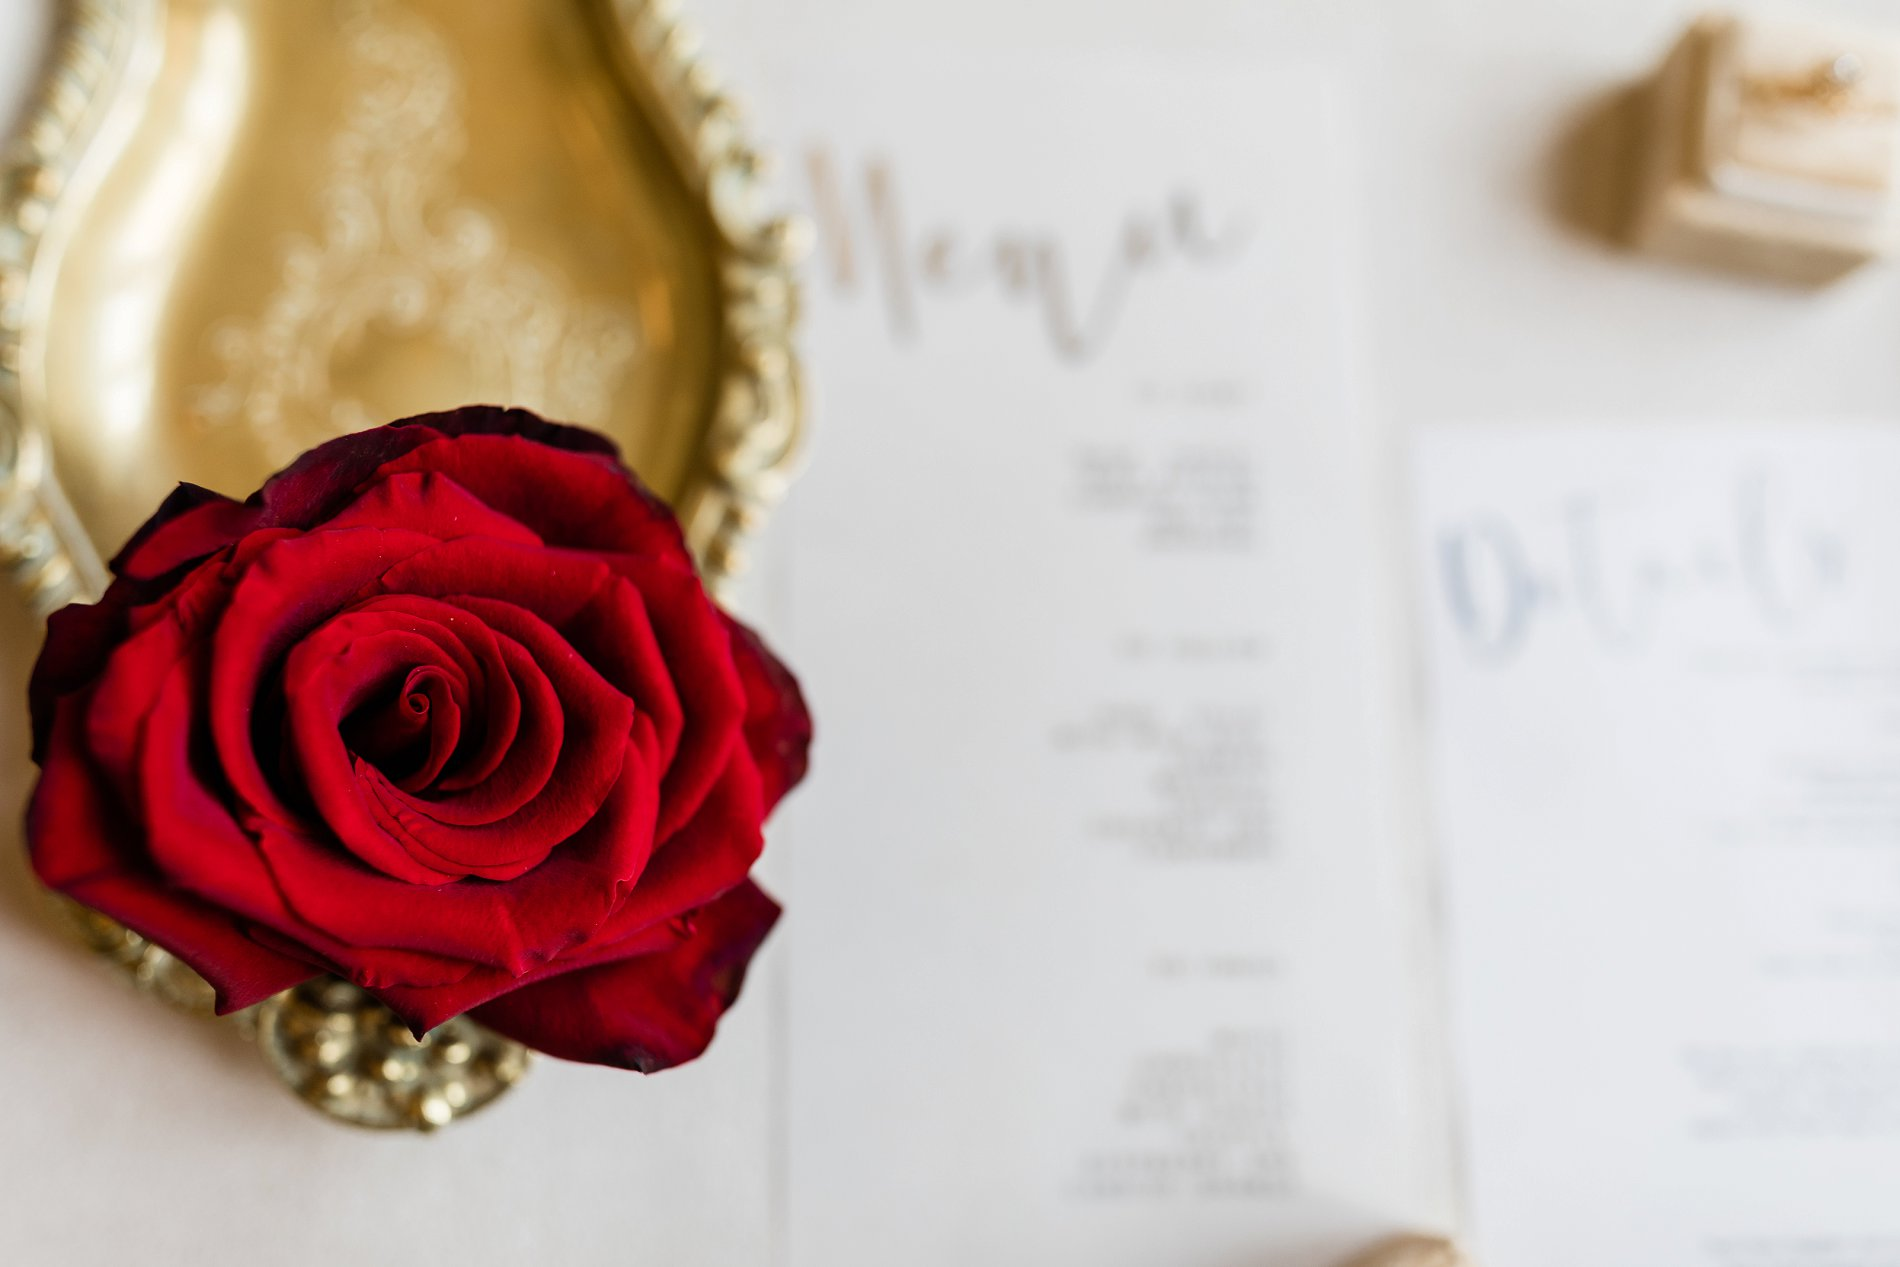 Forever Yours Styled Shoot (c) Camilla J. Hards and Courtney Dee Photography (4)